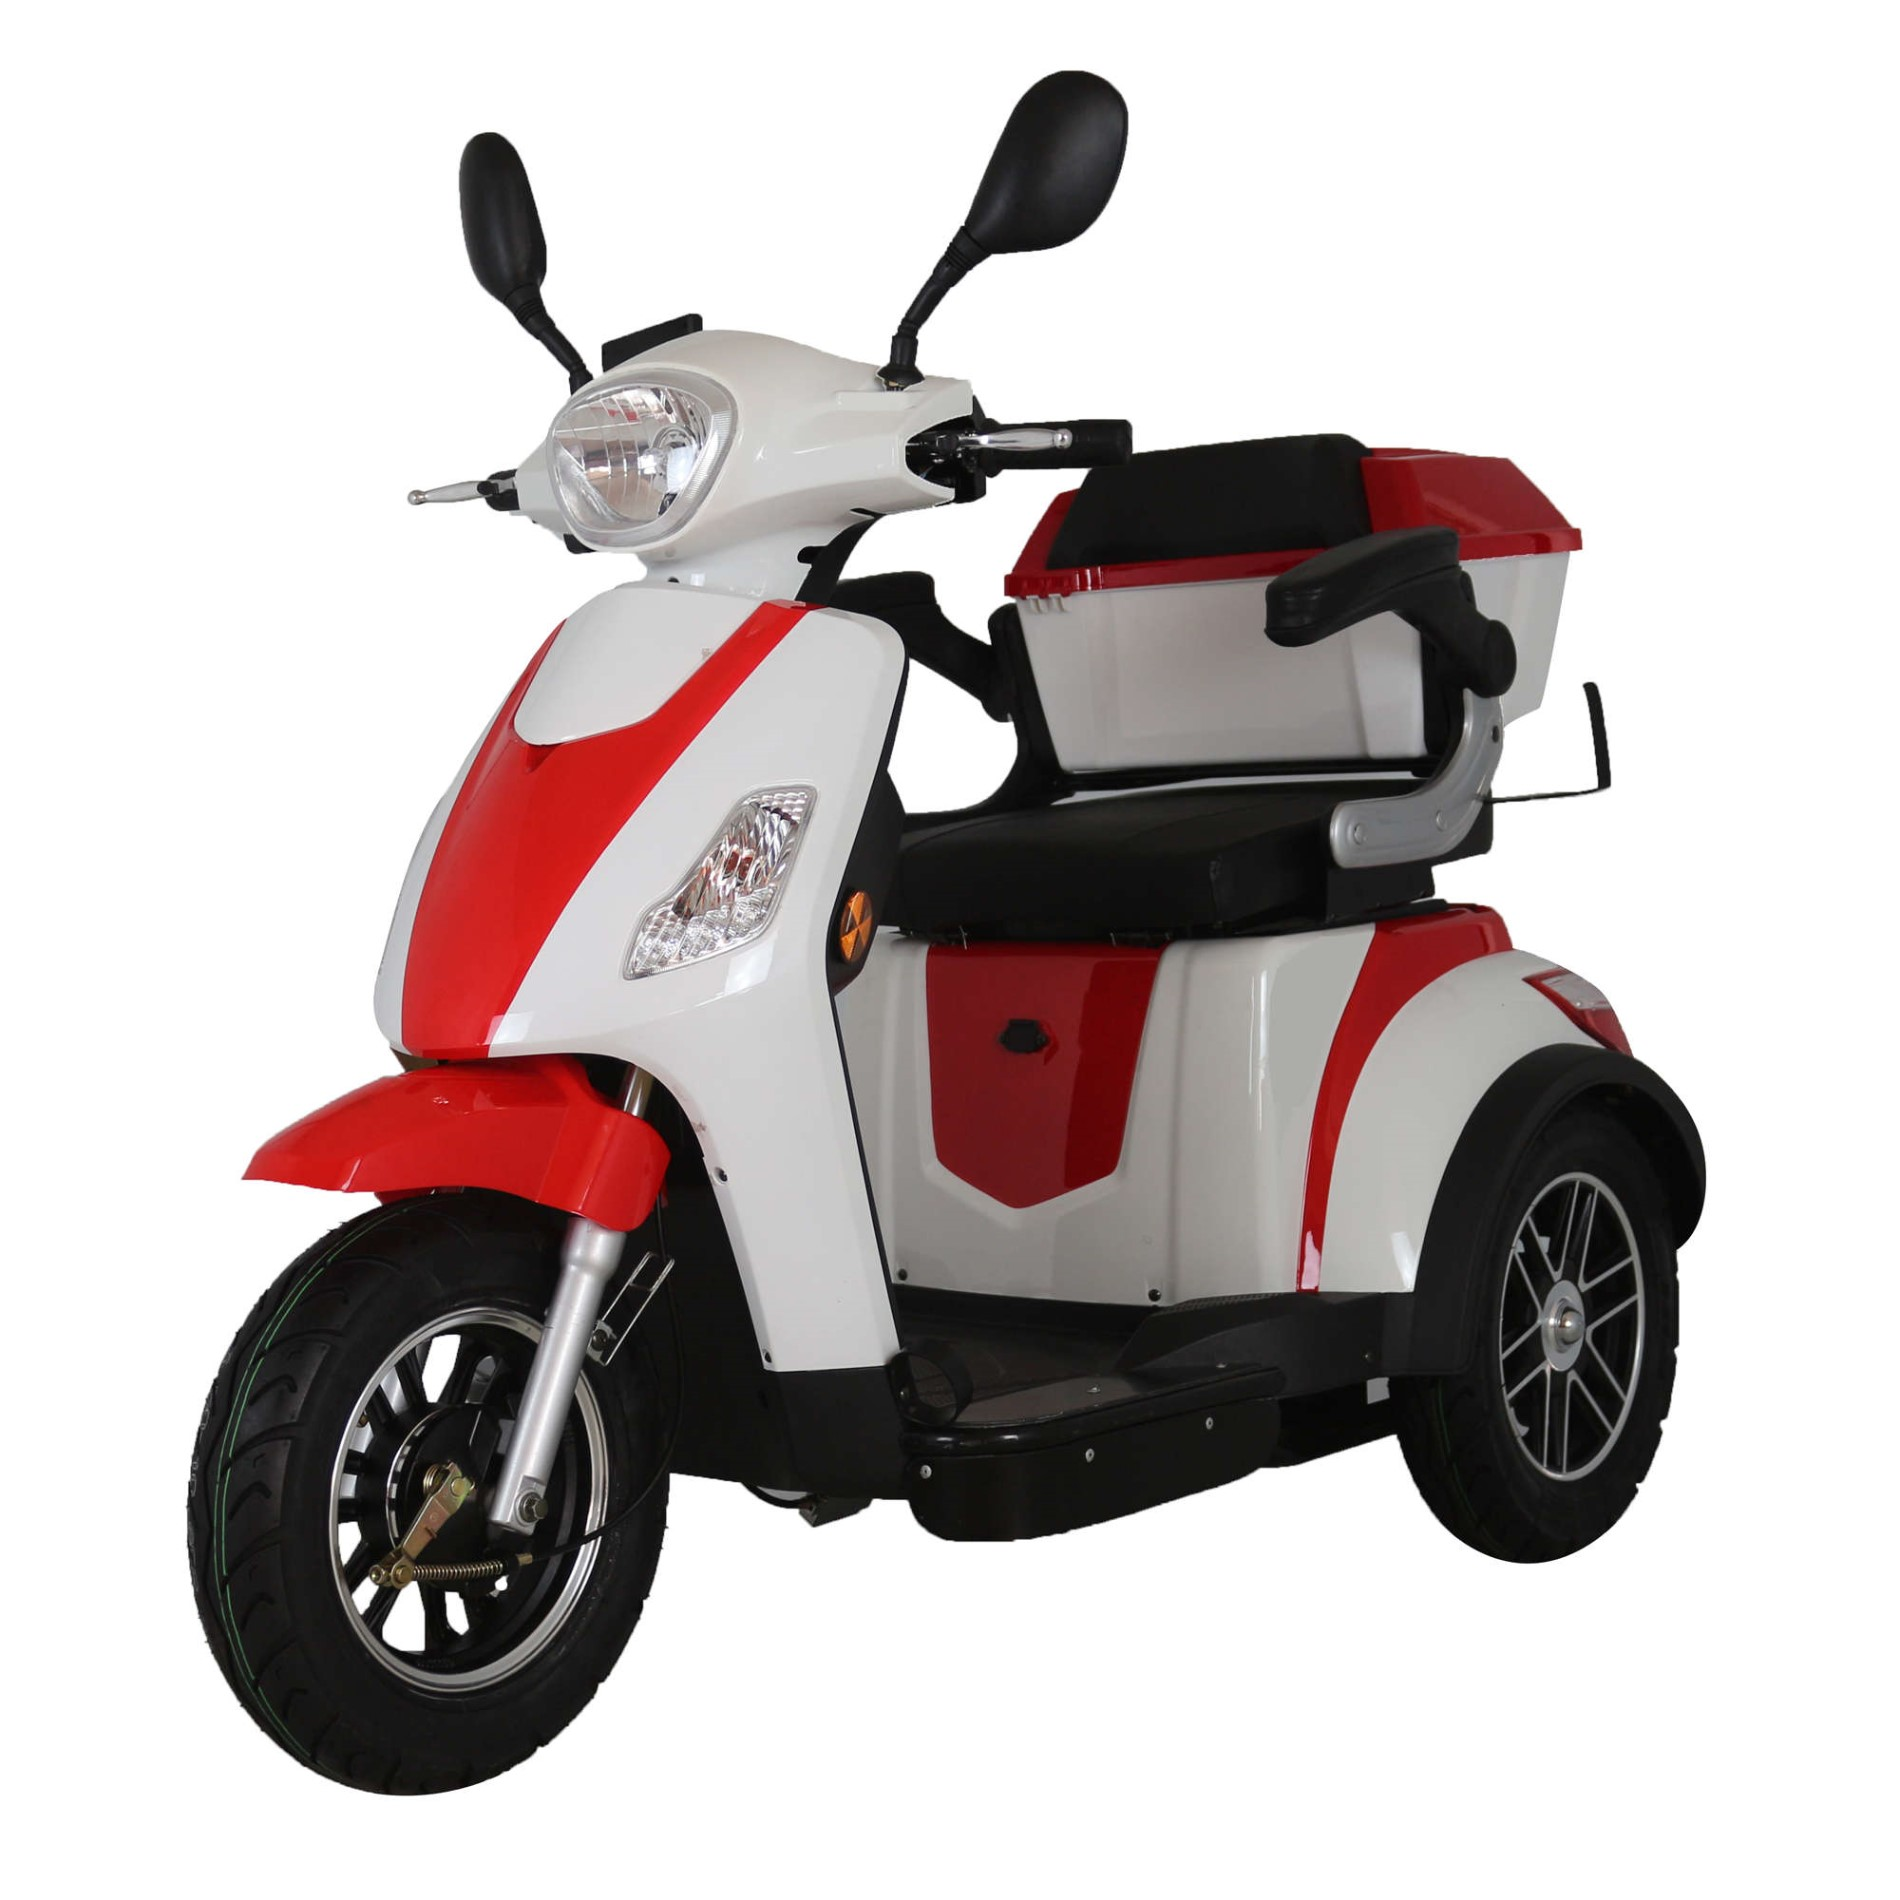 High quality Elderly Electric Scooter With Seat Quotes,China Elderly Electric Scooter With Seat Factory,Elderly Electric Scooter With Seat Purchasing